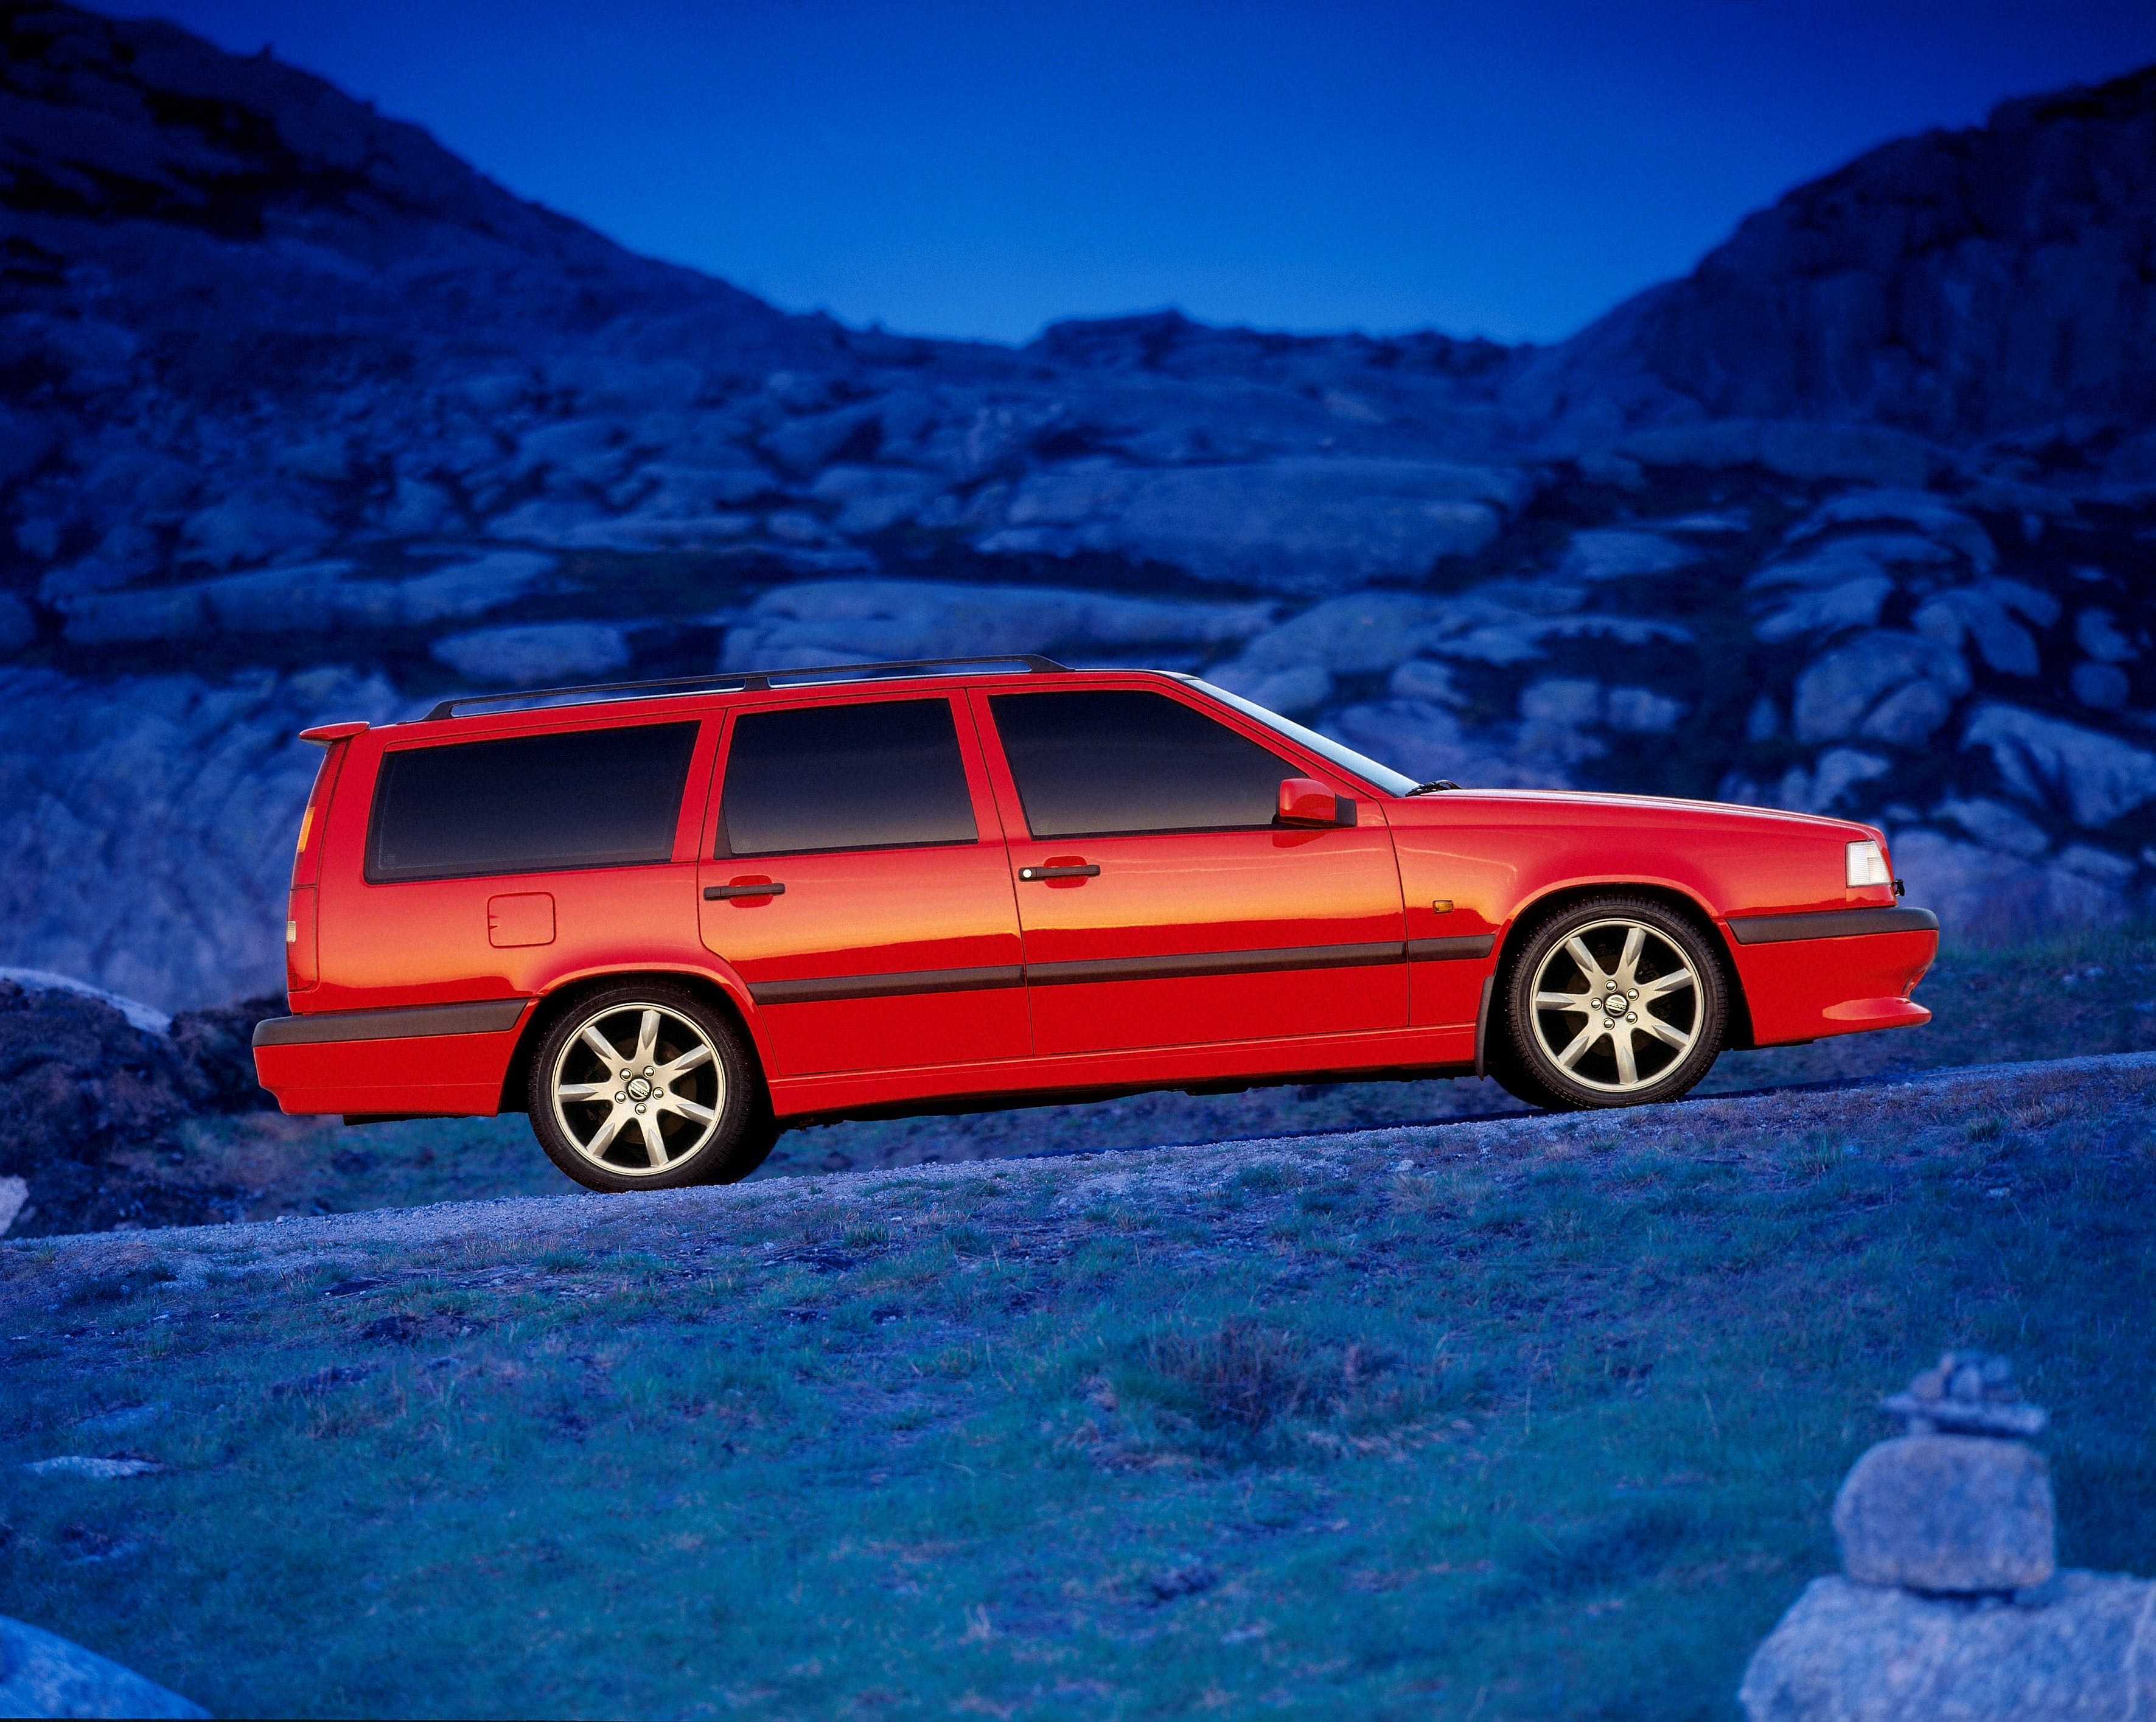 Volvo 850 R -  850, 850 wagon, 1996, Exterior, Historical, Images, R